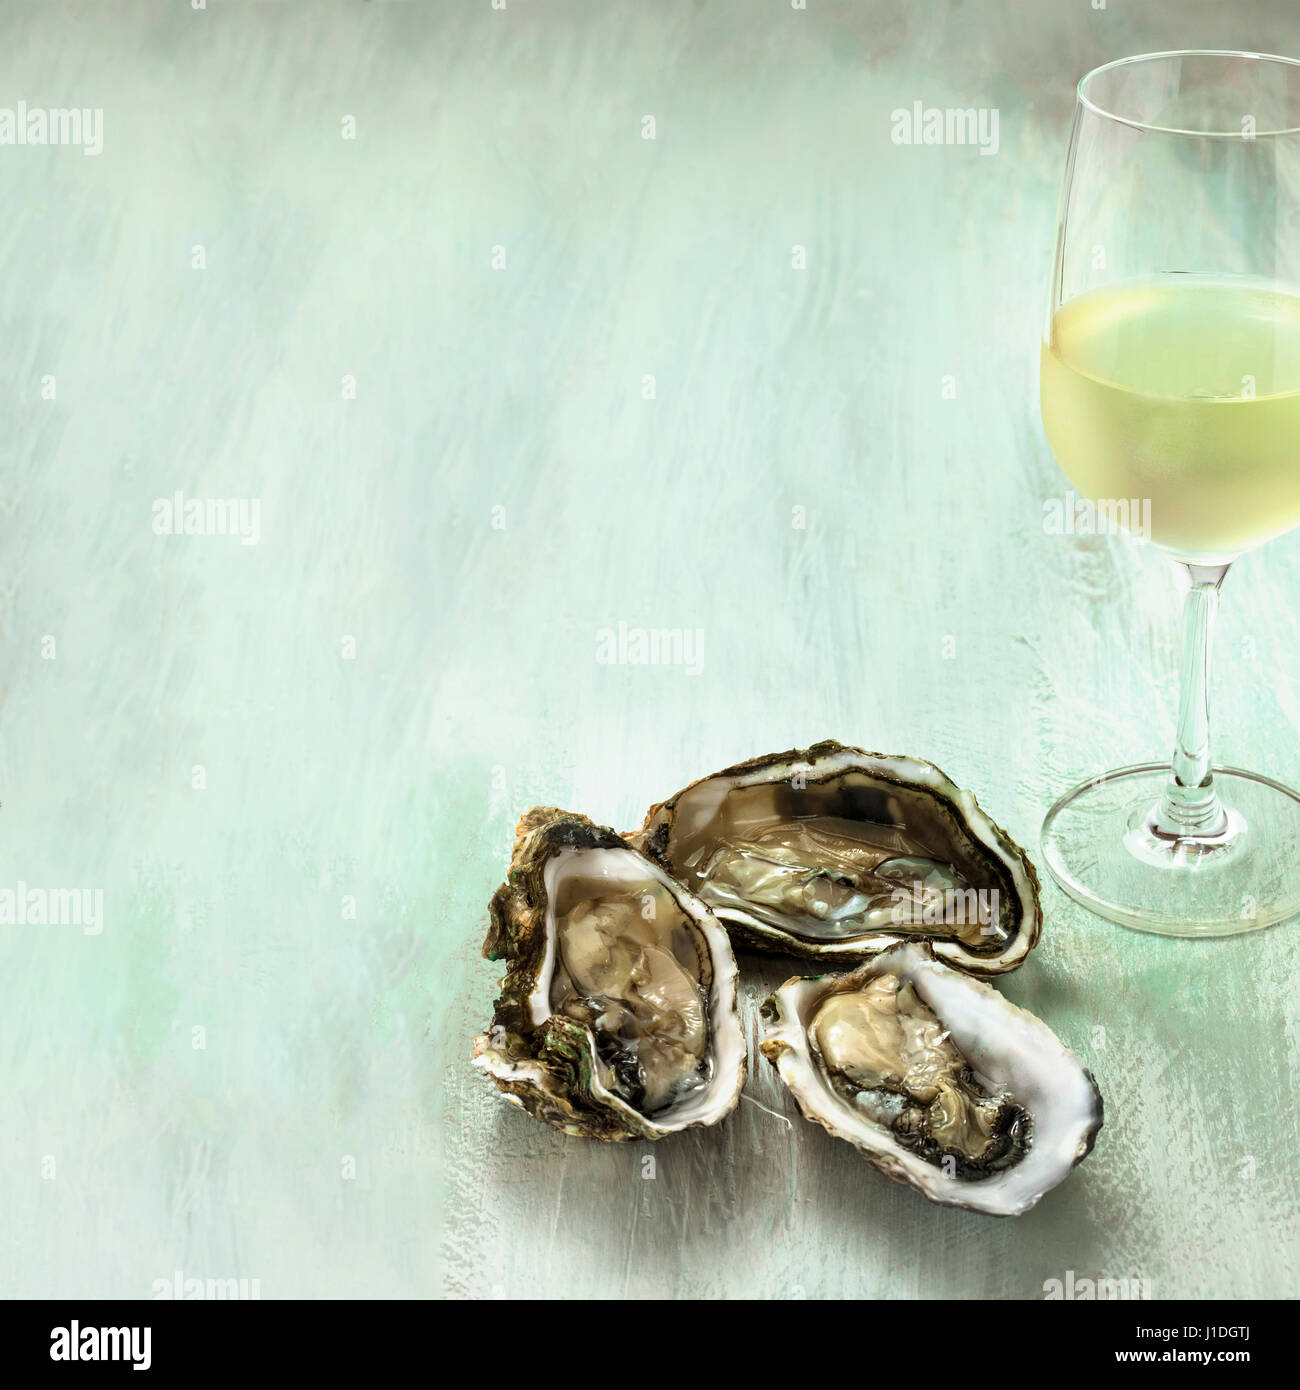 White wine and oysters photo with copyspace - Stock Image